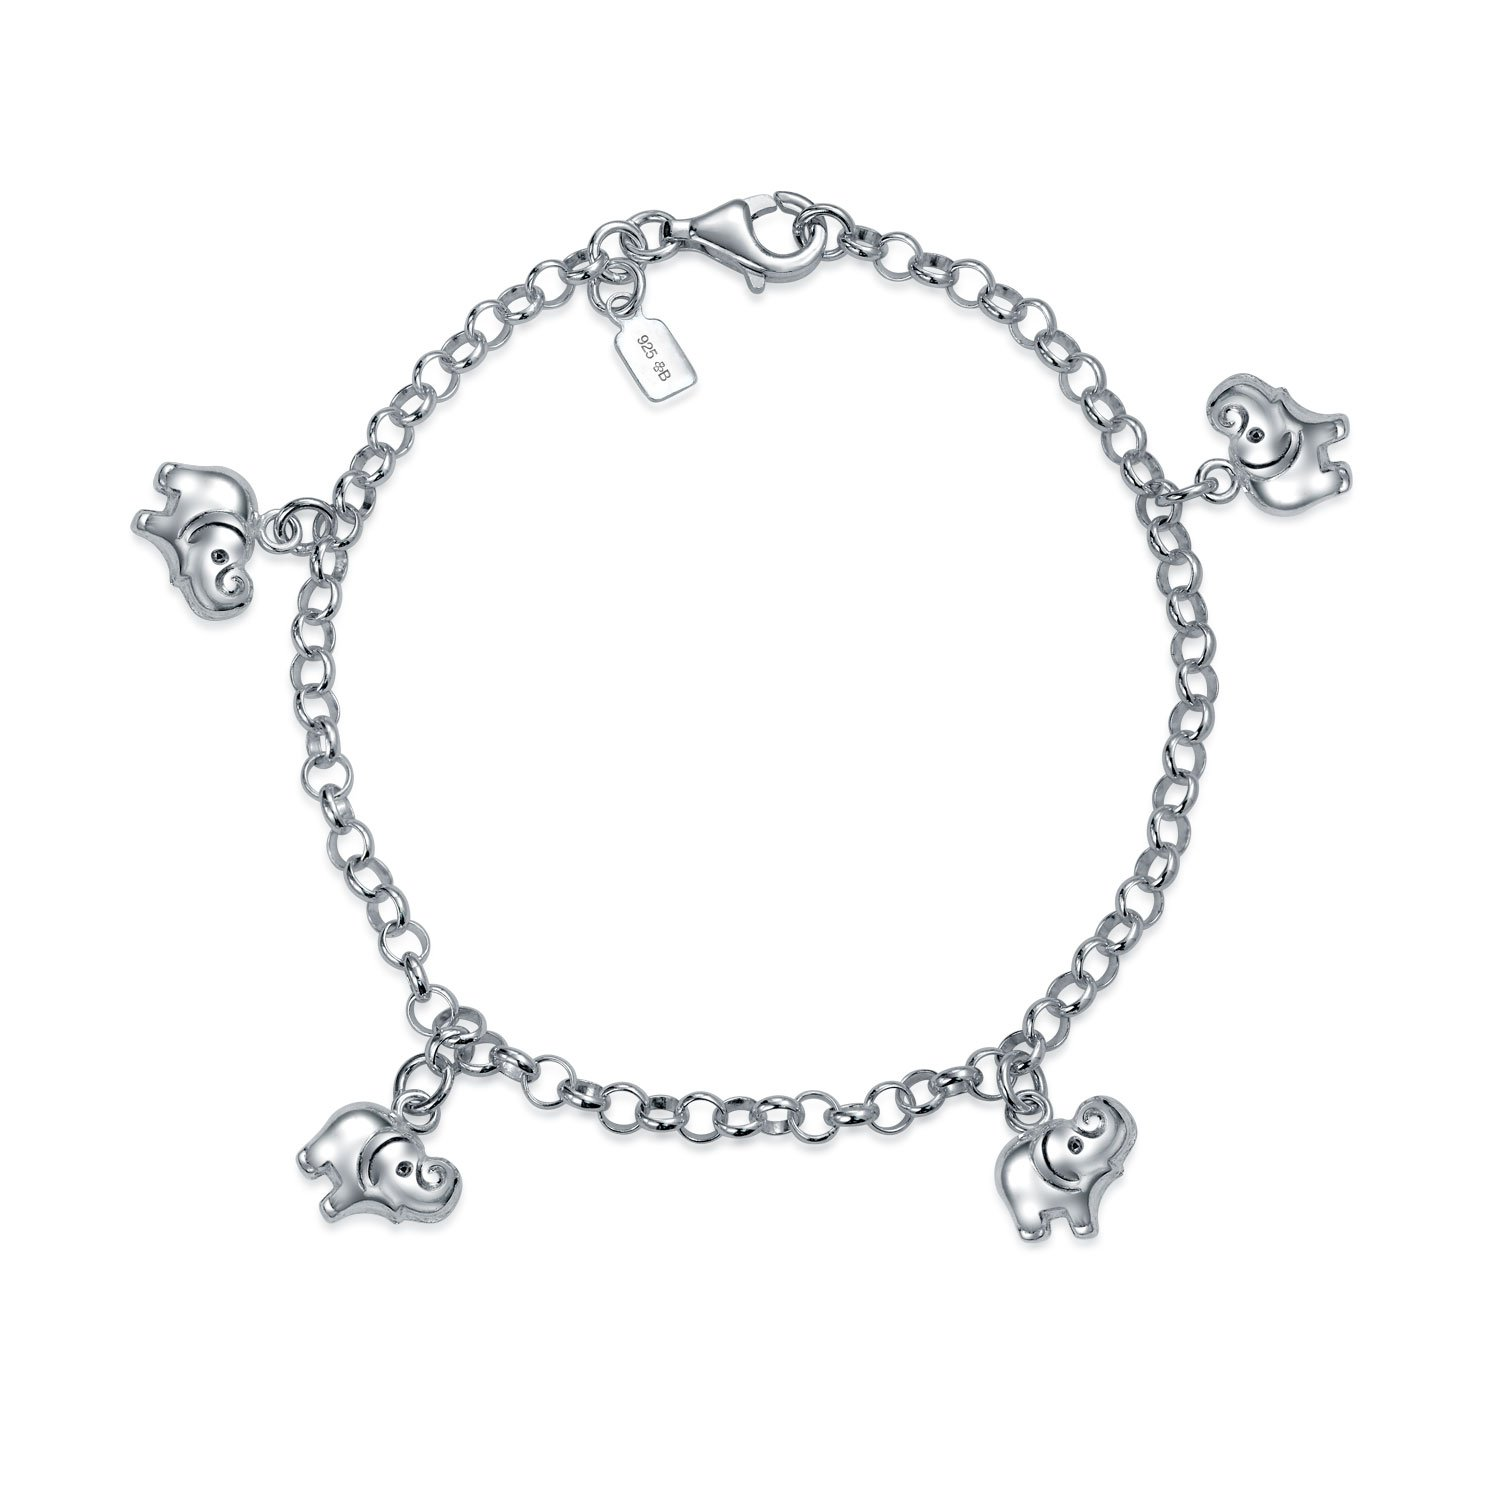 Minimalist Good Luck Multi Charm Dangling Elephant Bracelet For Women For Teen 925 Sterling Silver